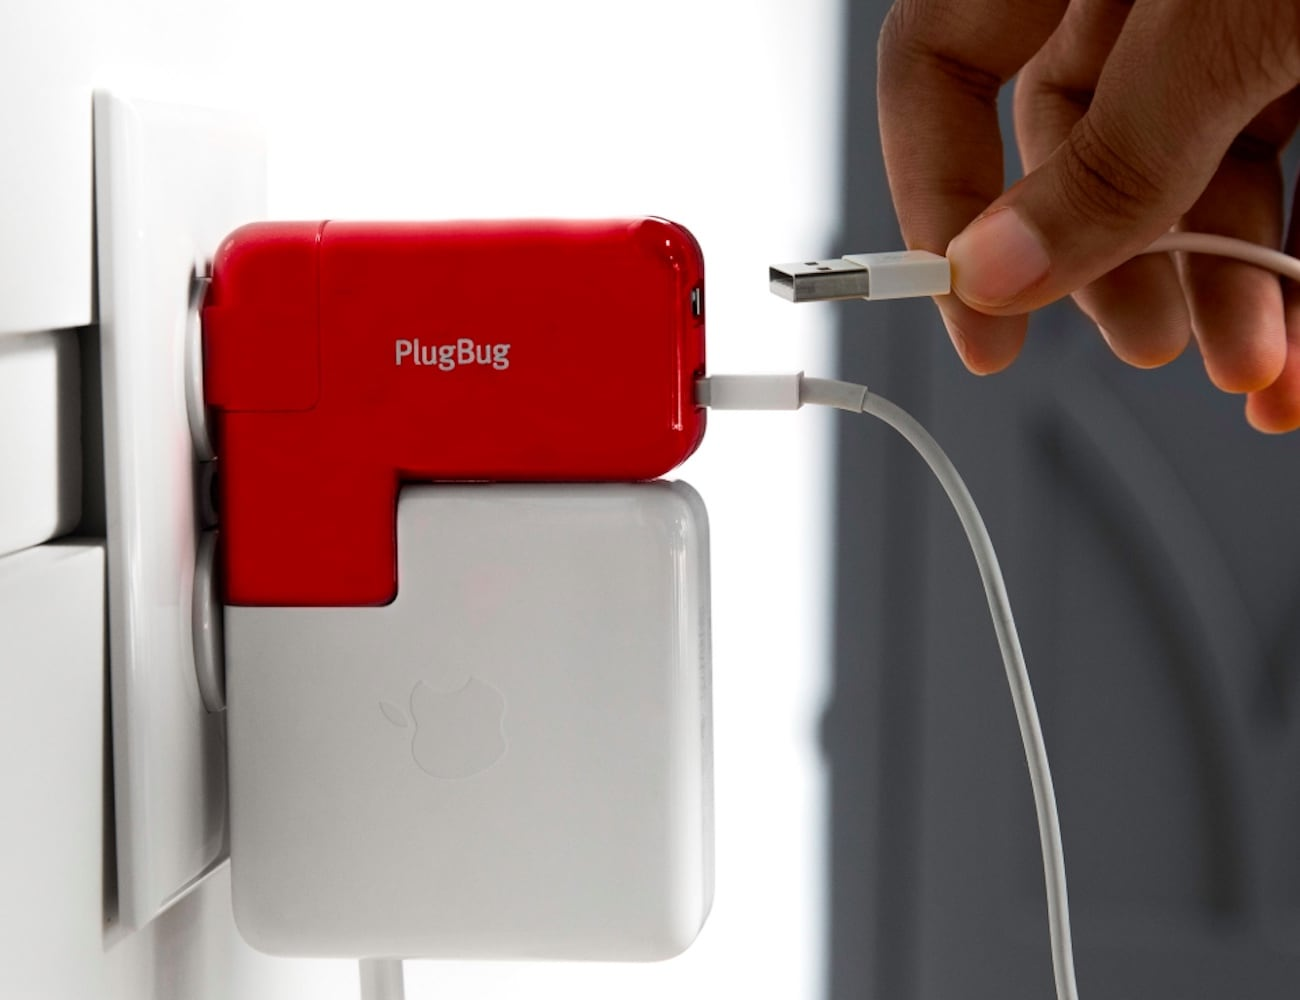 Twelve South PlugBug Duo MacBook Travel Adapter lets you charge while using older devices